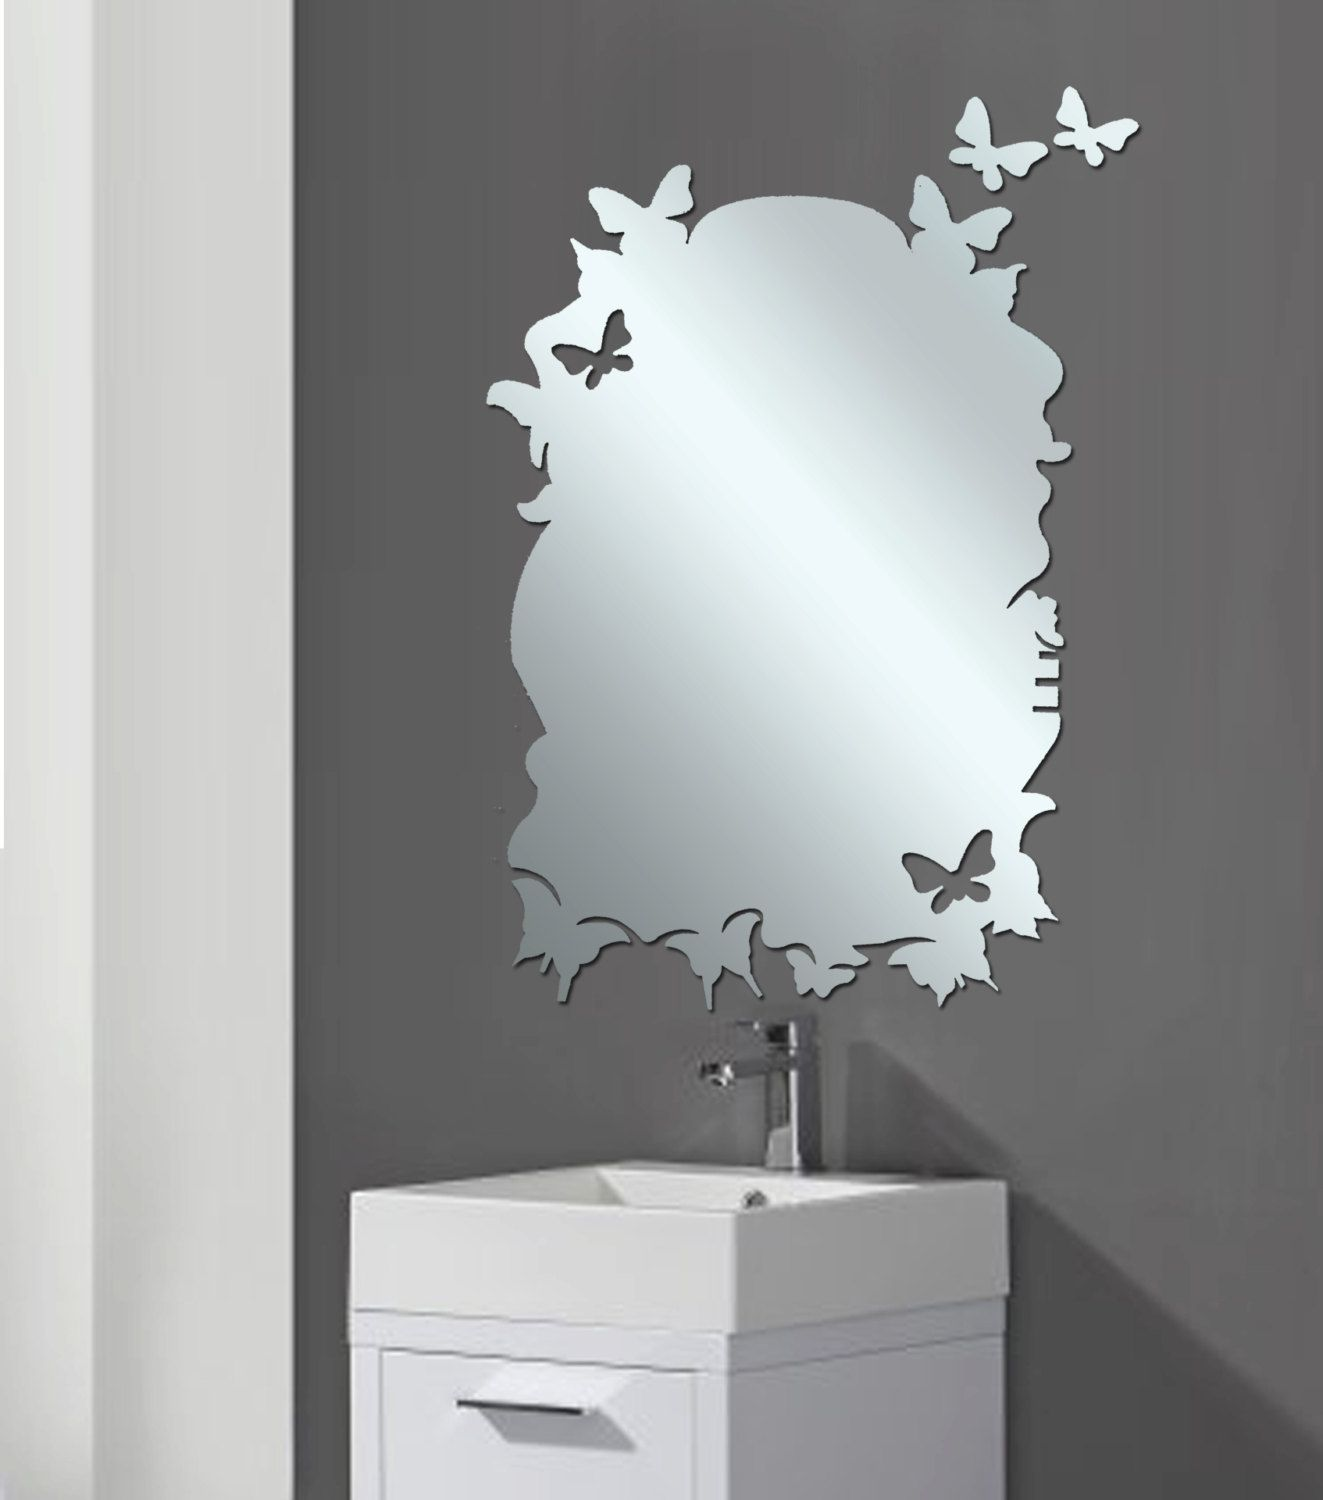 modern butterfly wall decal mirror for bathroom or by colorpan . modern butterfly wall decal mirror for bathroom or by colorpan